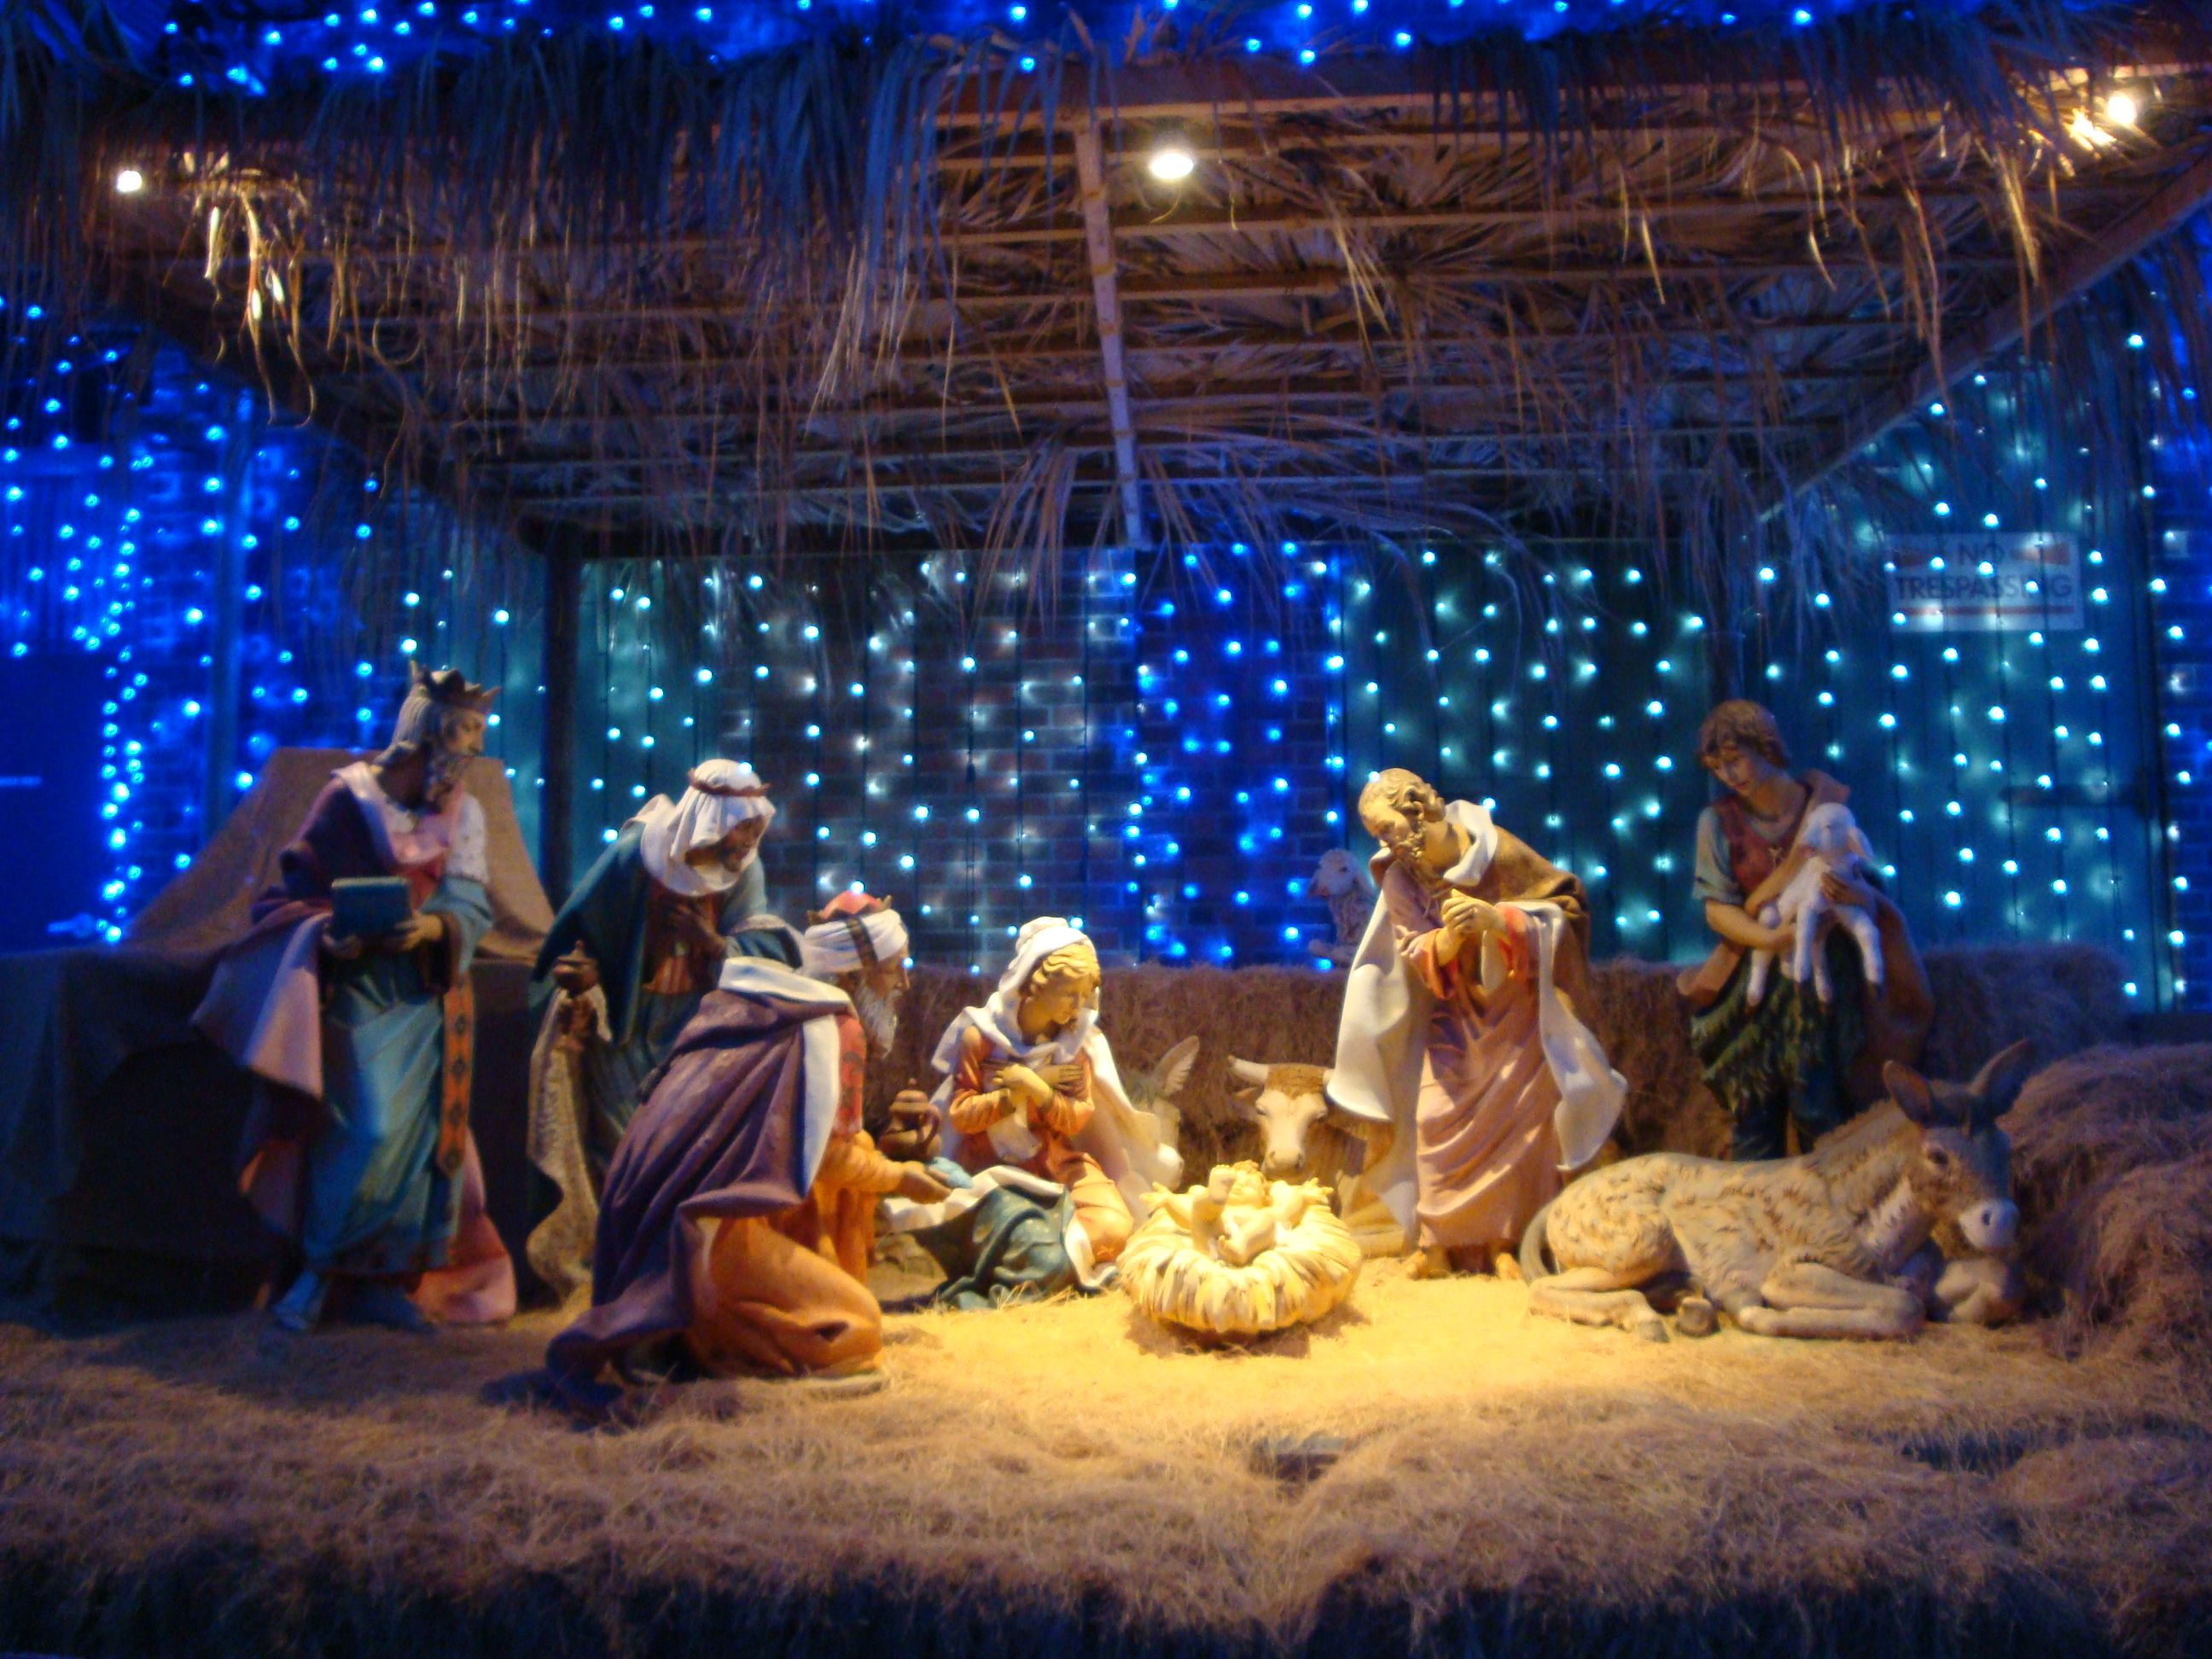 disney nativity | The Nativity scene from Disney's Hollywood ...